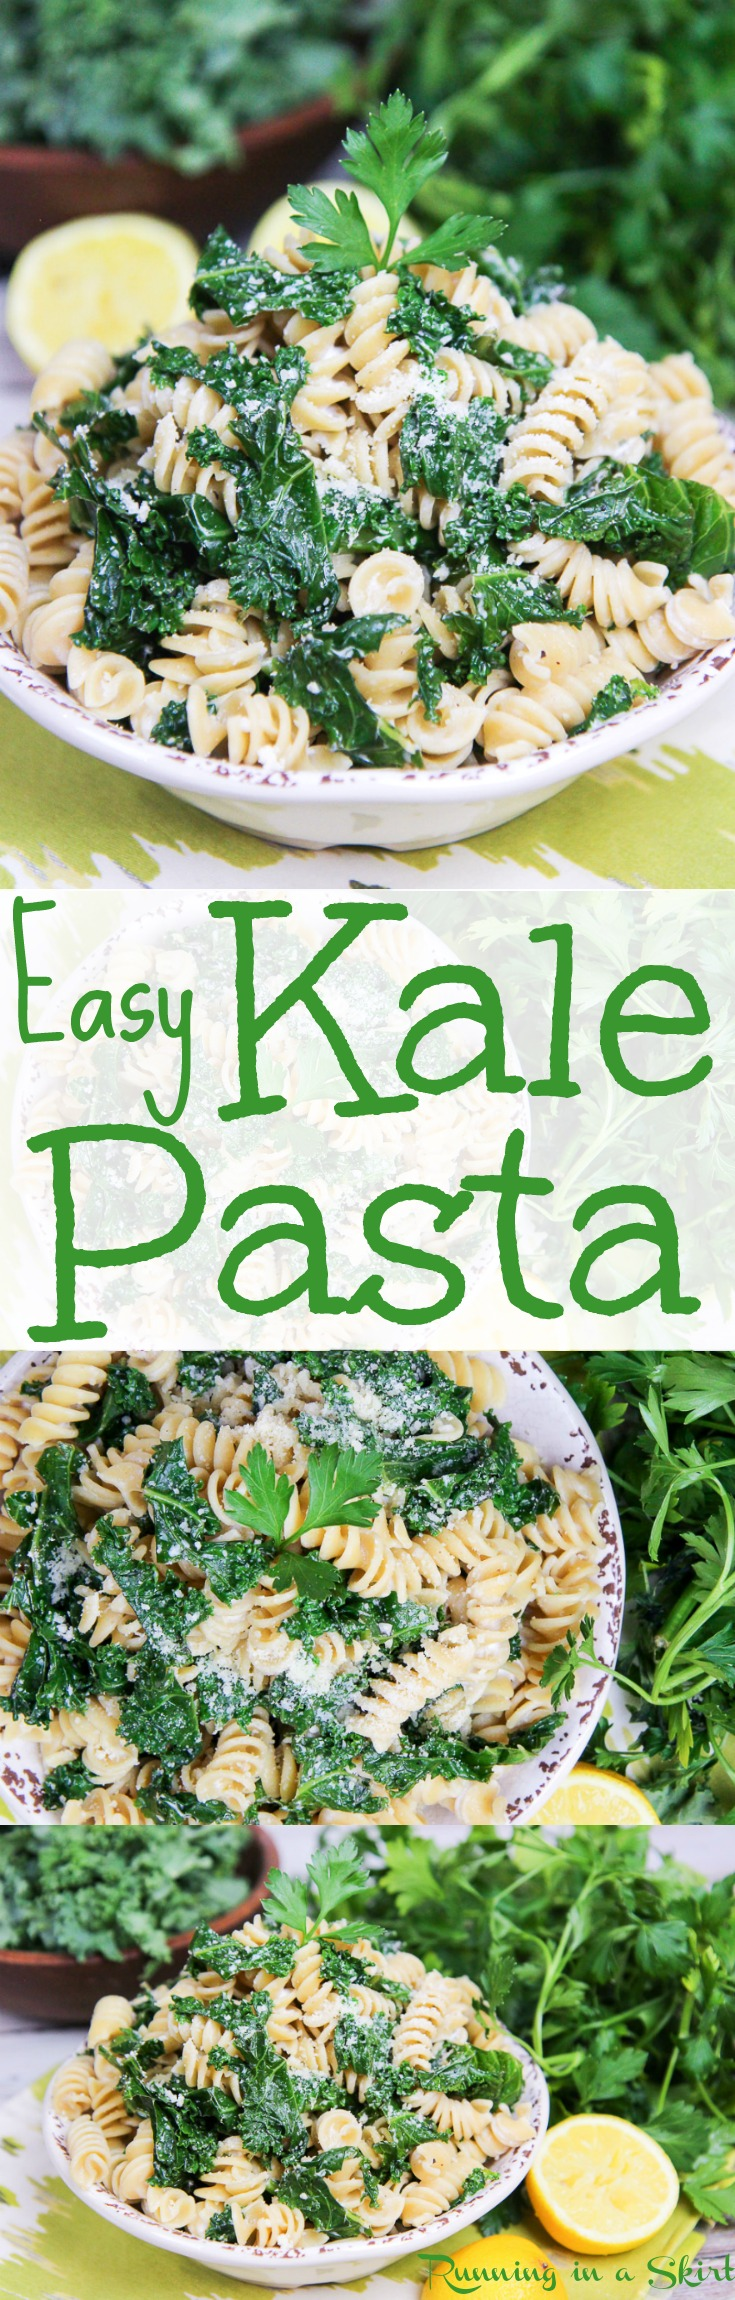 Easy & Healthy Lemon Kale Pasta recipe. An easy vegetarian weekday dinner with a light slightly creamy sauce. A homemade dish that is great for Meatless Monday and when you are craving comfort foods. Includes Parmesan cheese, greek yogurt and garlic. Vegetarian with Vegan option. / Running in a Skirt via @juliewunder